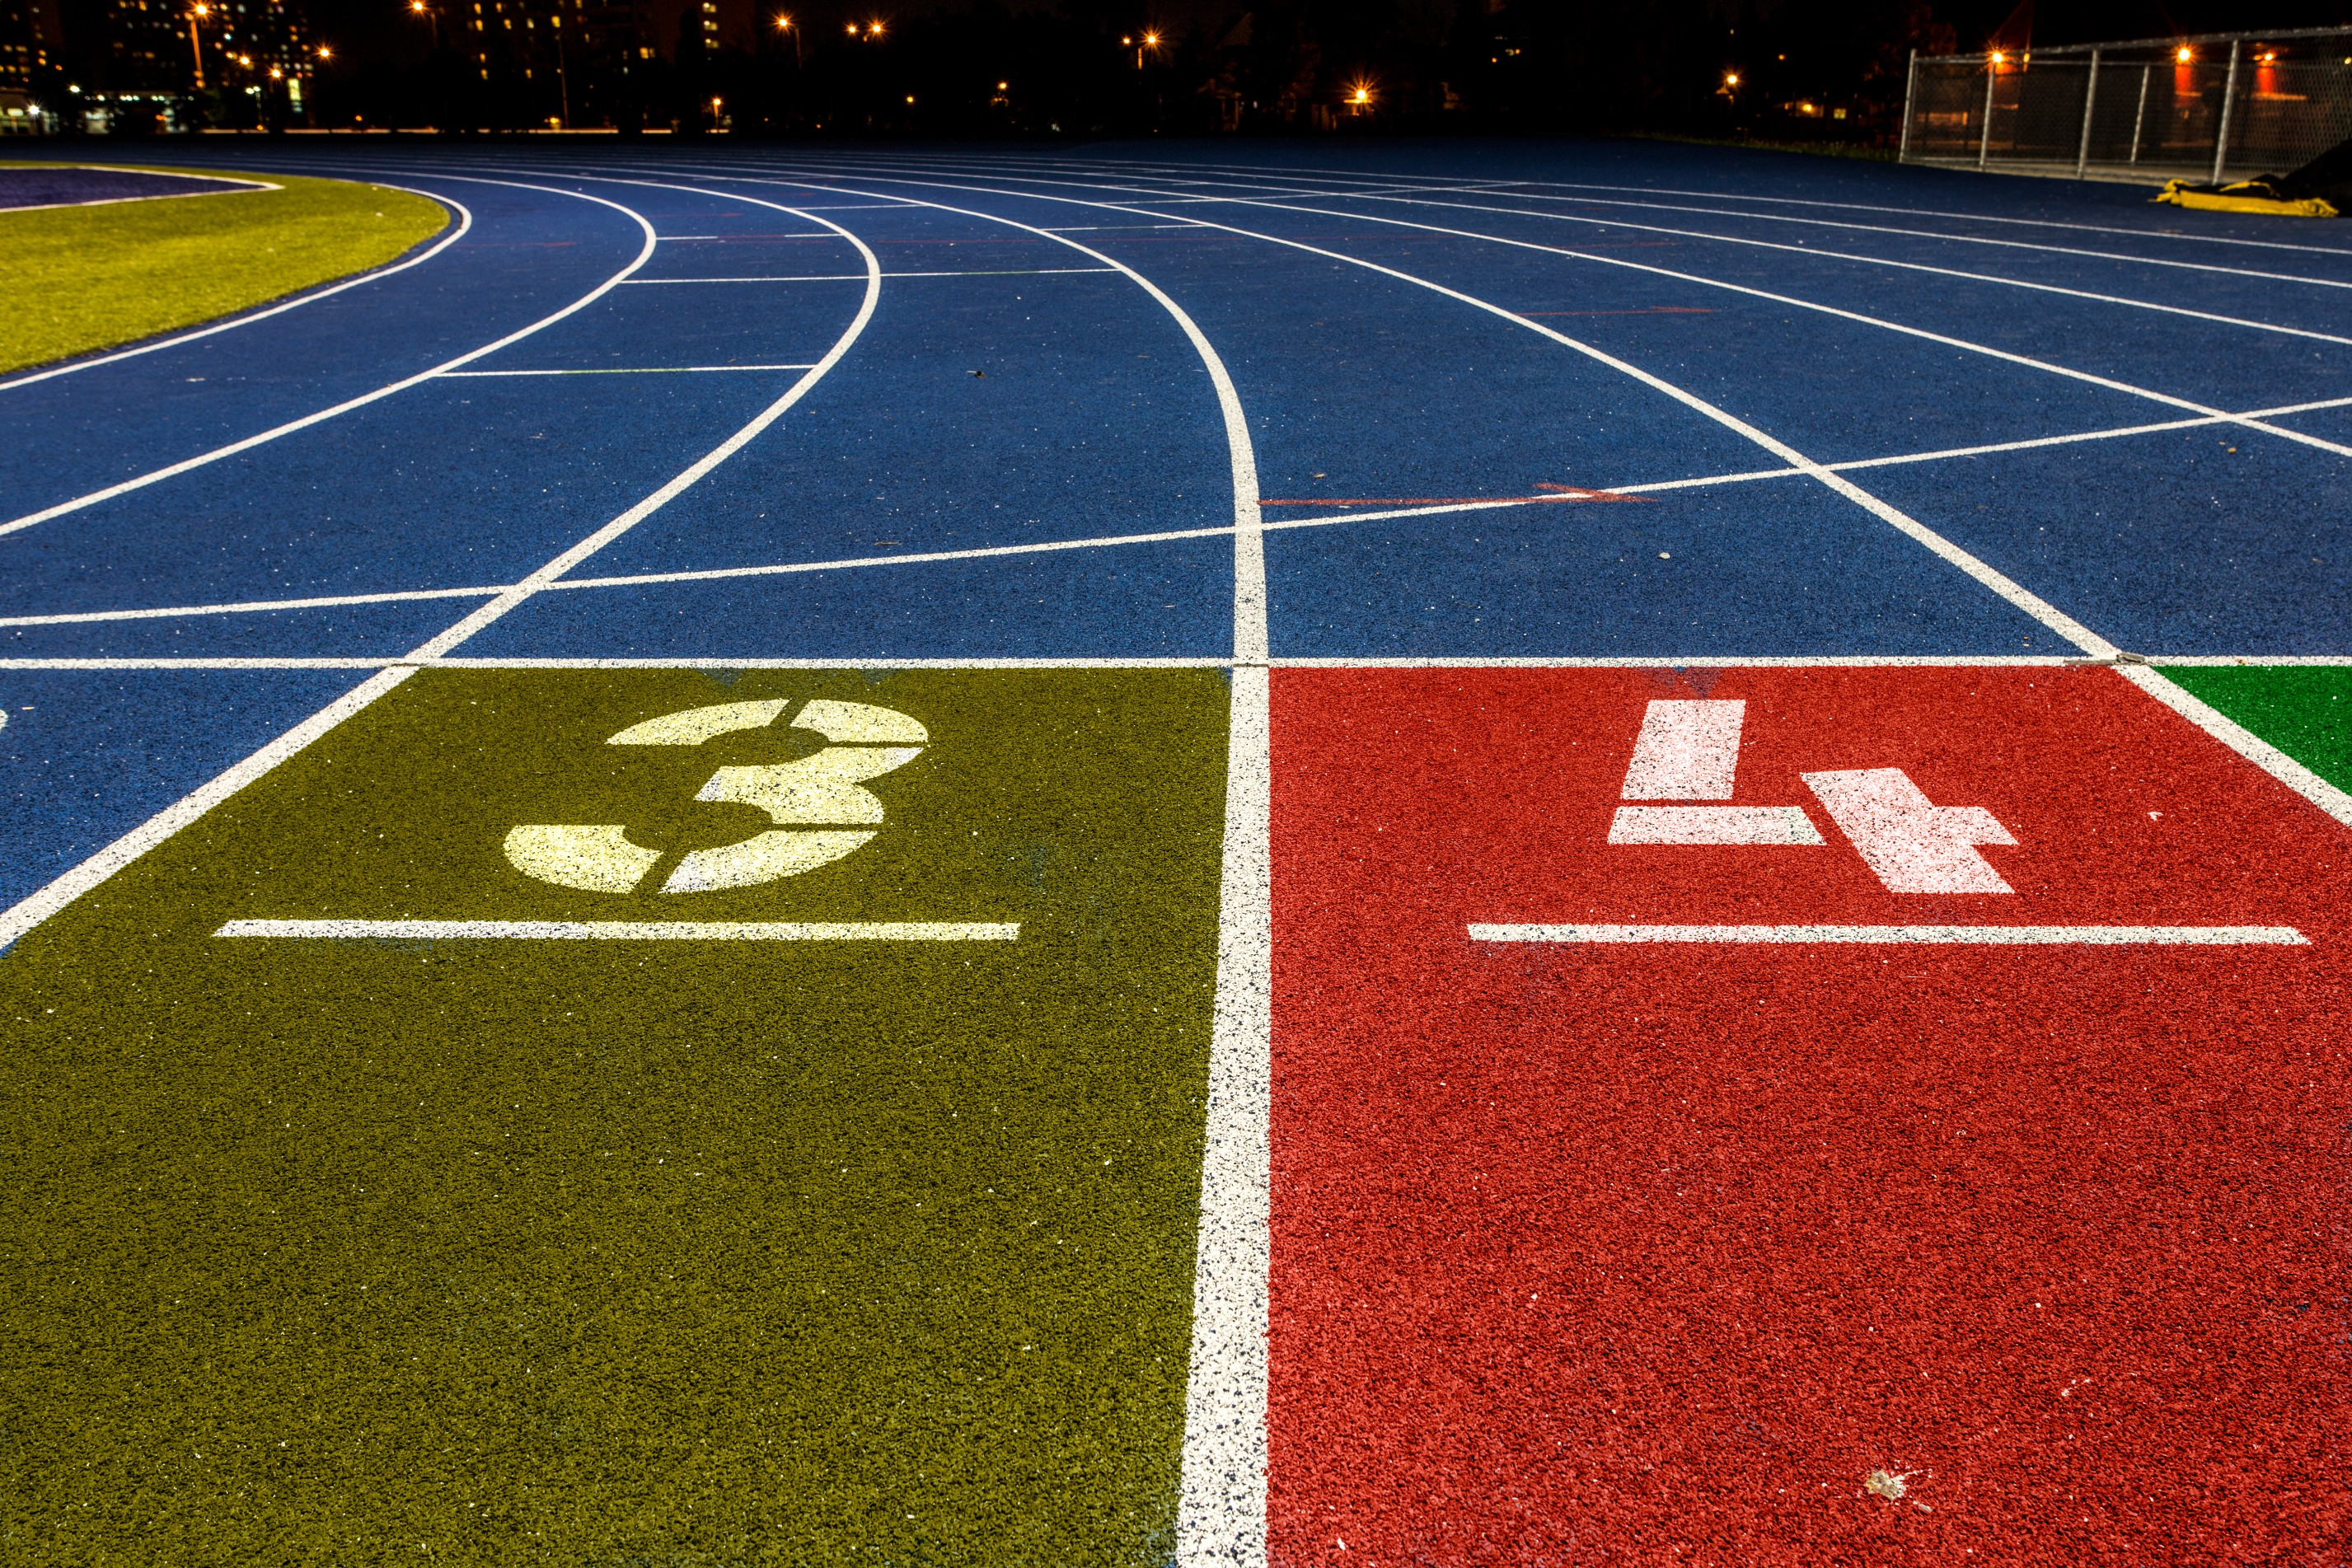 Polymeric athletic track surfaces feature high quality grip and cushioning suitable for all levels of athletics.